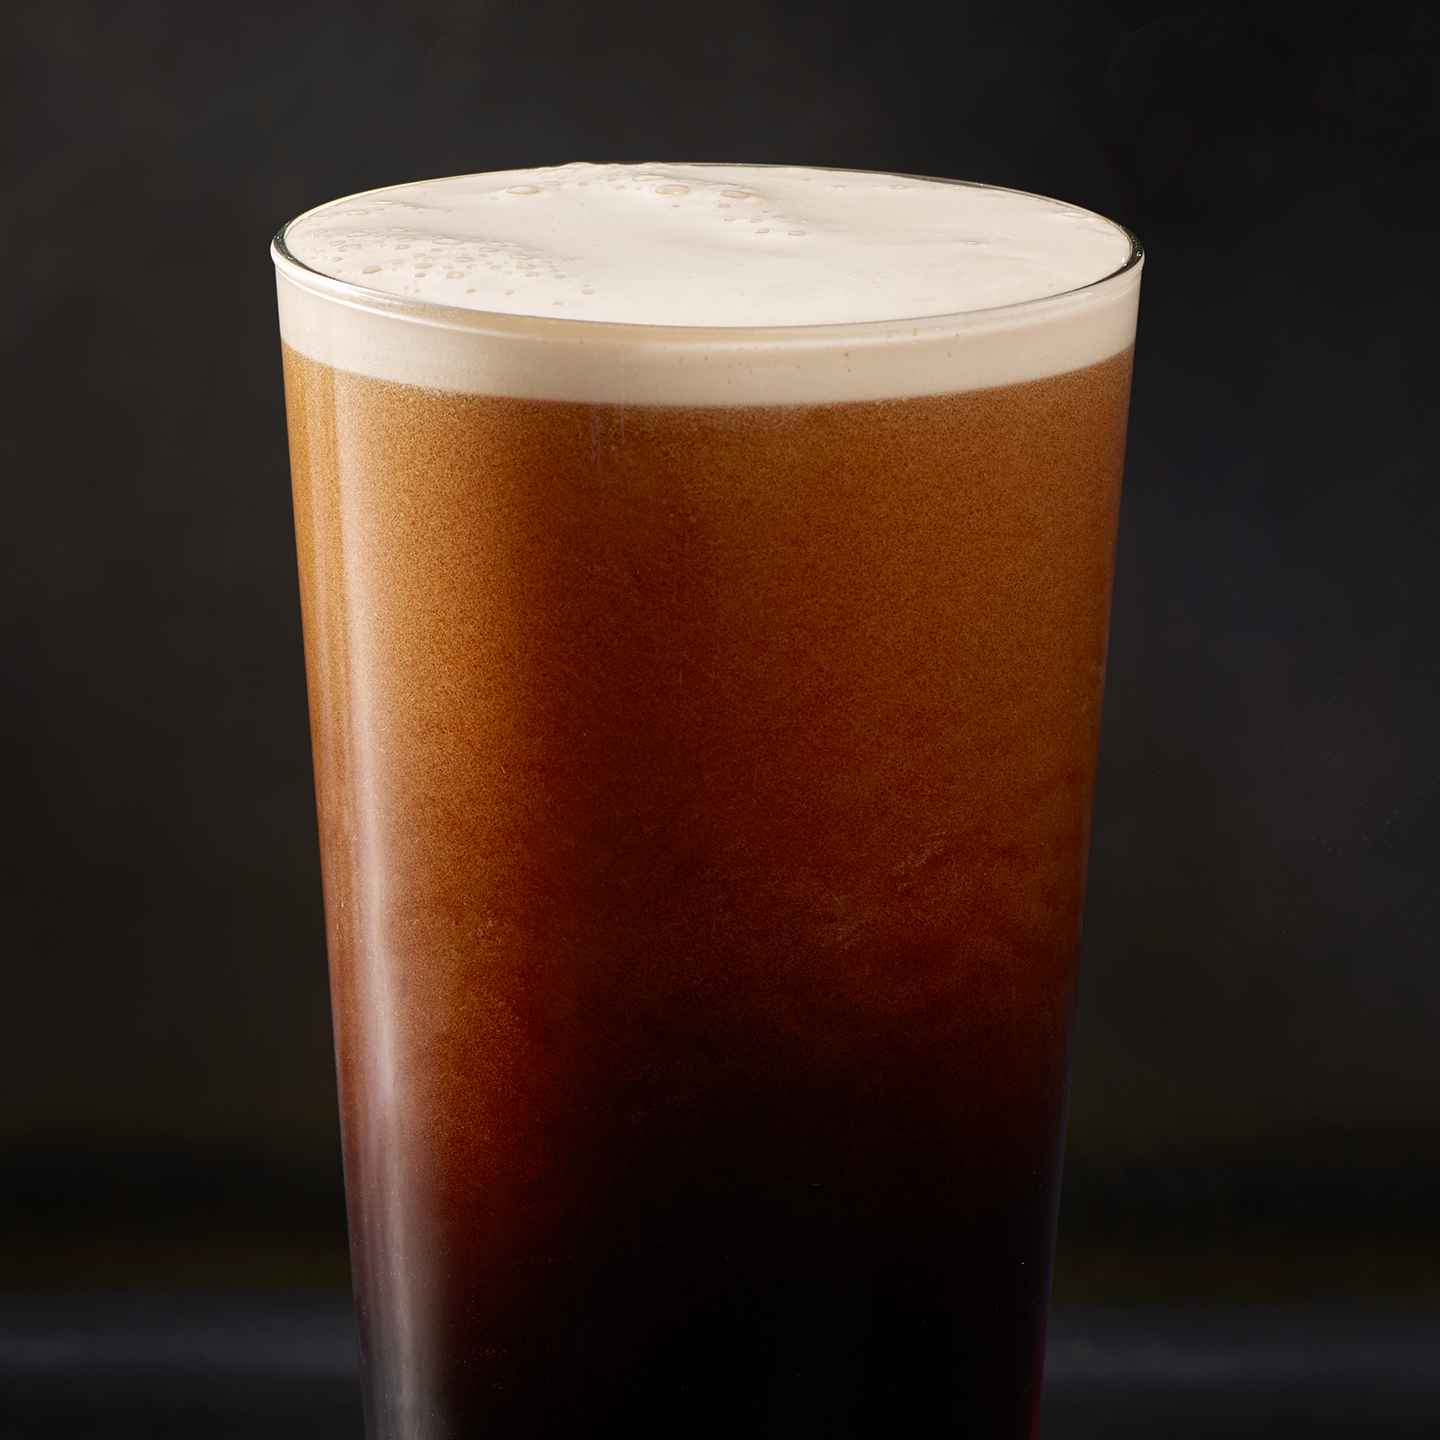 Nitro Cold Brew Starbucks Coffee Company